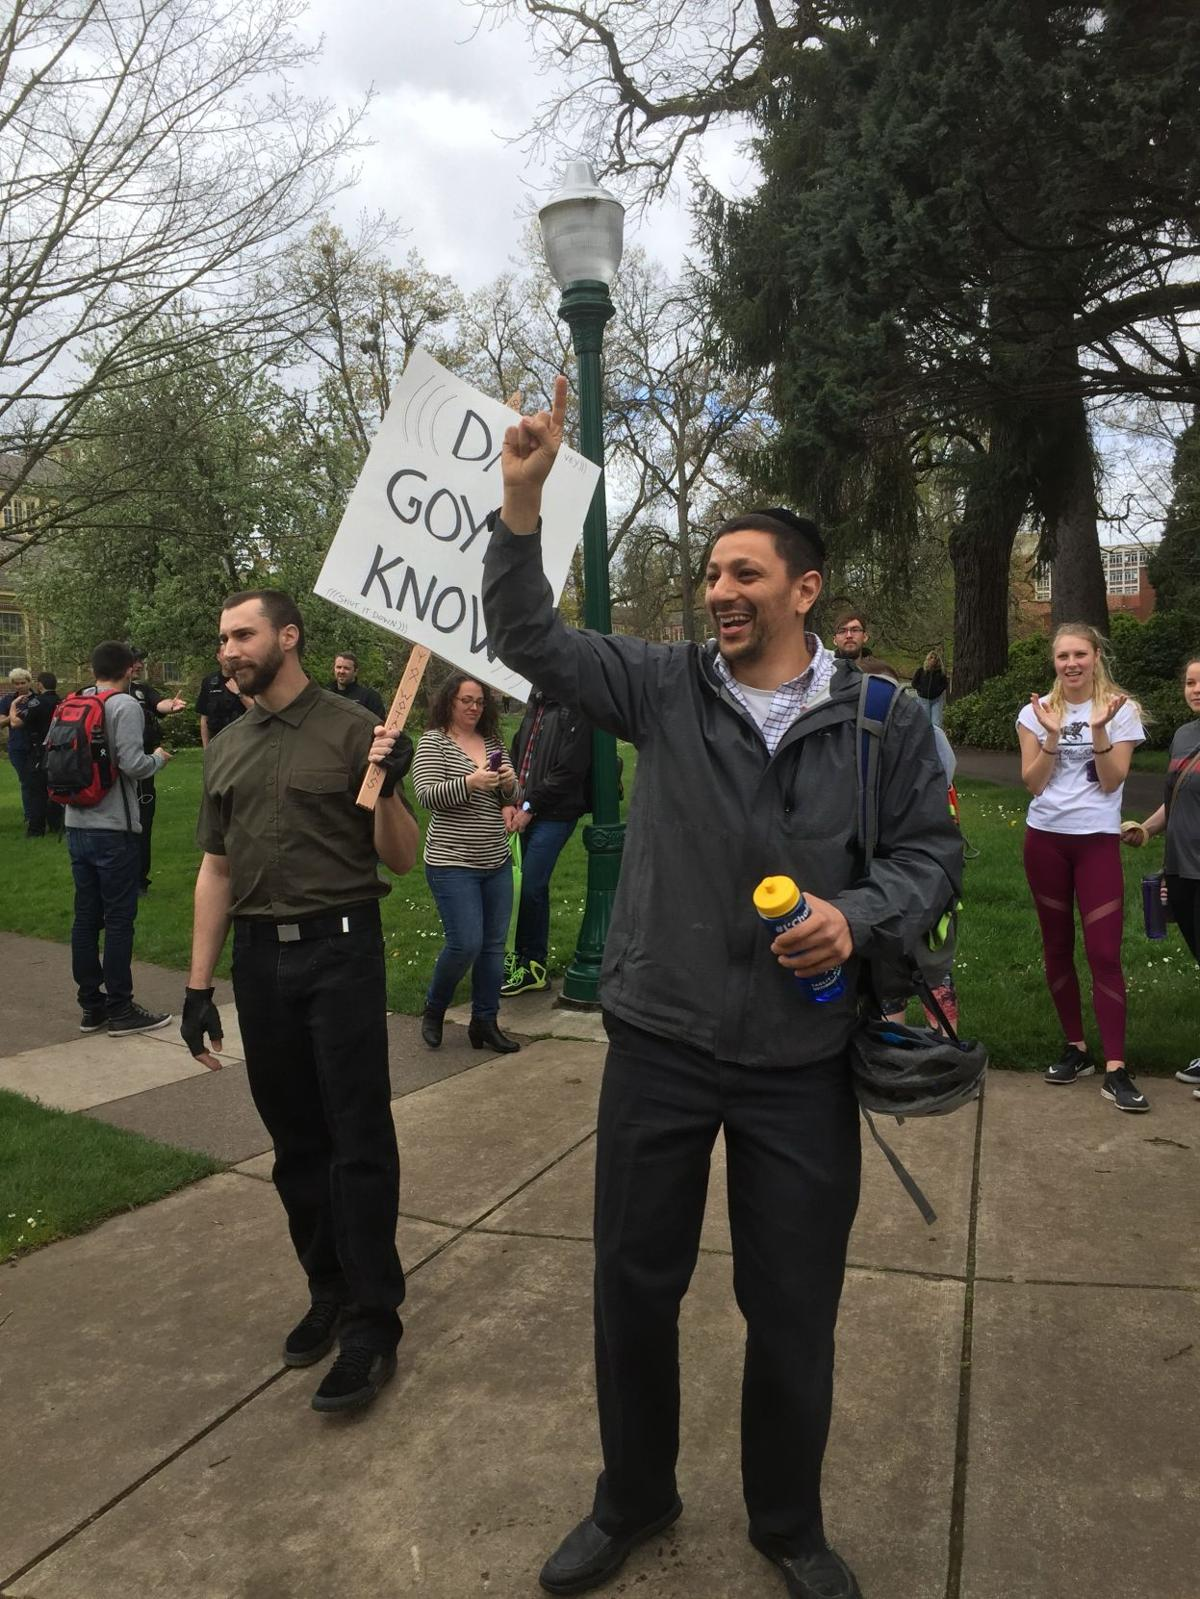 White nationalists visit UO; don't find any support